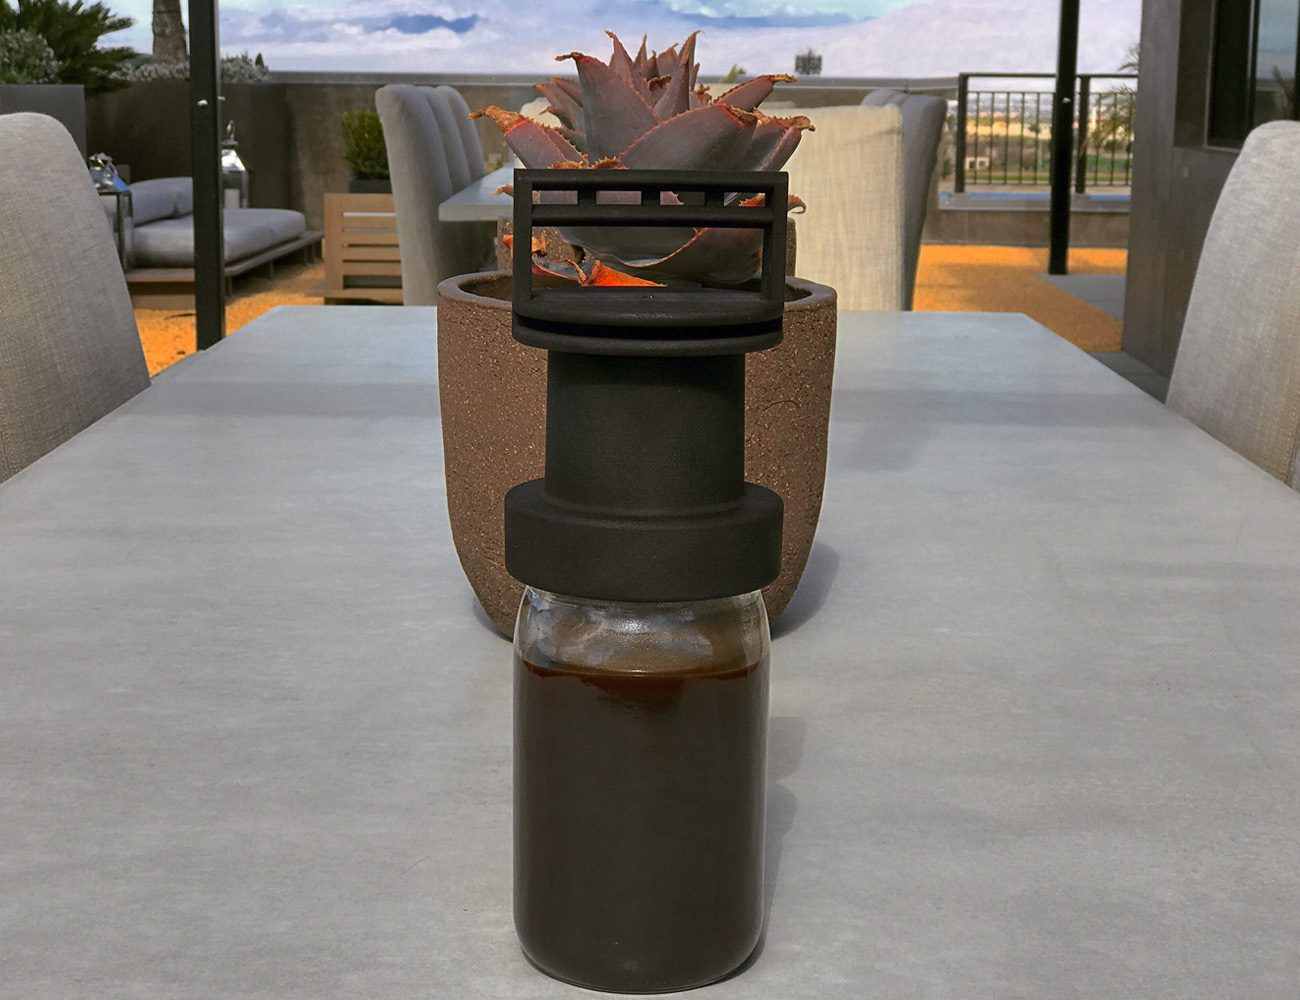 CUB 15-Minute Cold Brew Coffee System